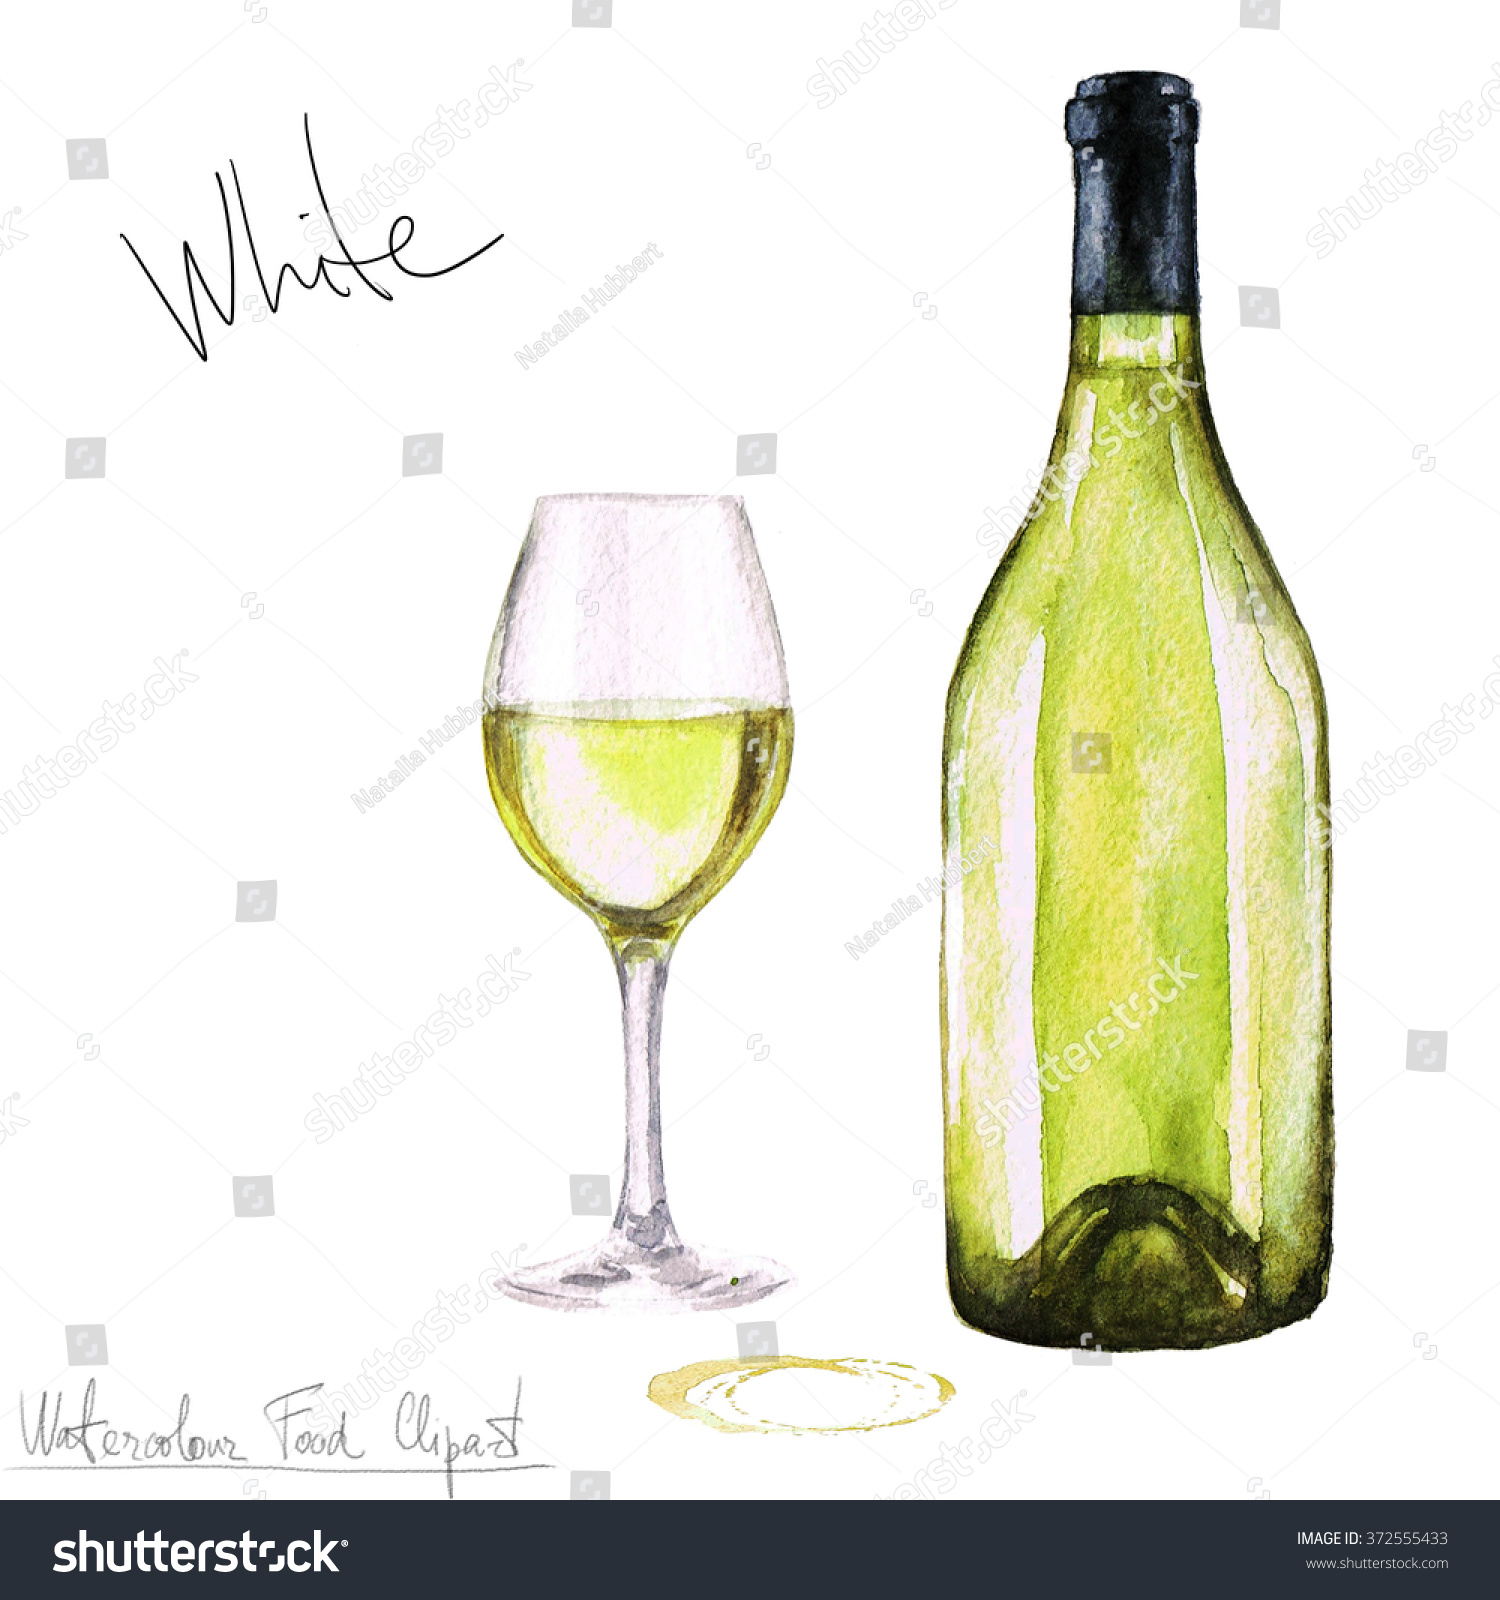 hight resolution of watercolor food clipart wine